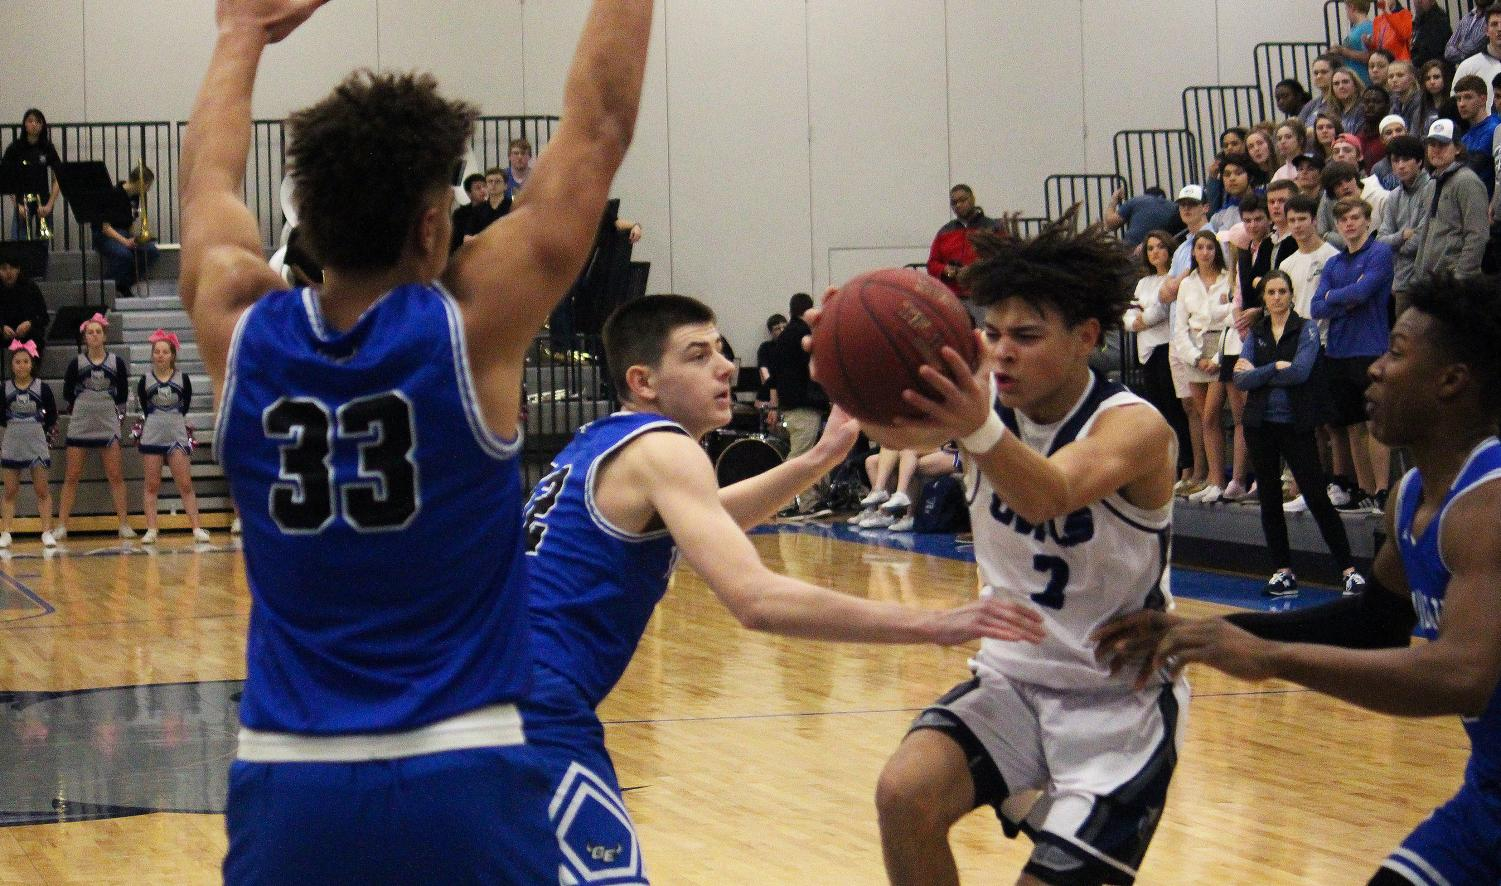 Junior Cougar Downing drives the ball towards the hoop during the Owls losing game.